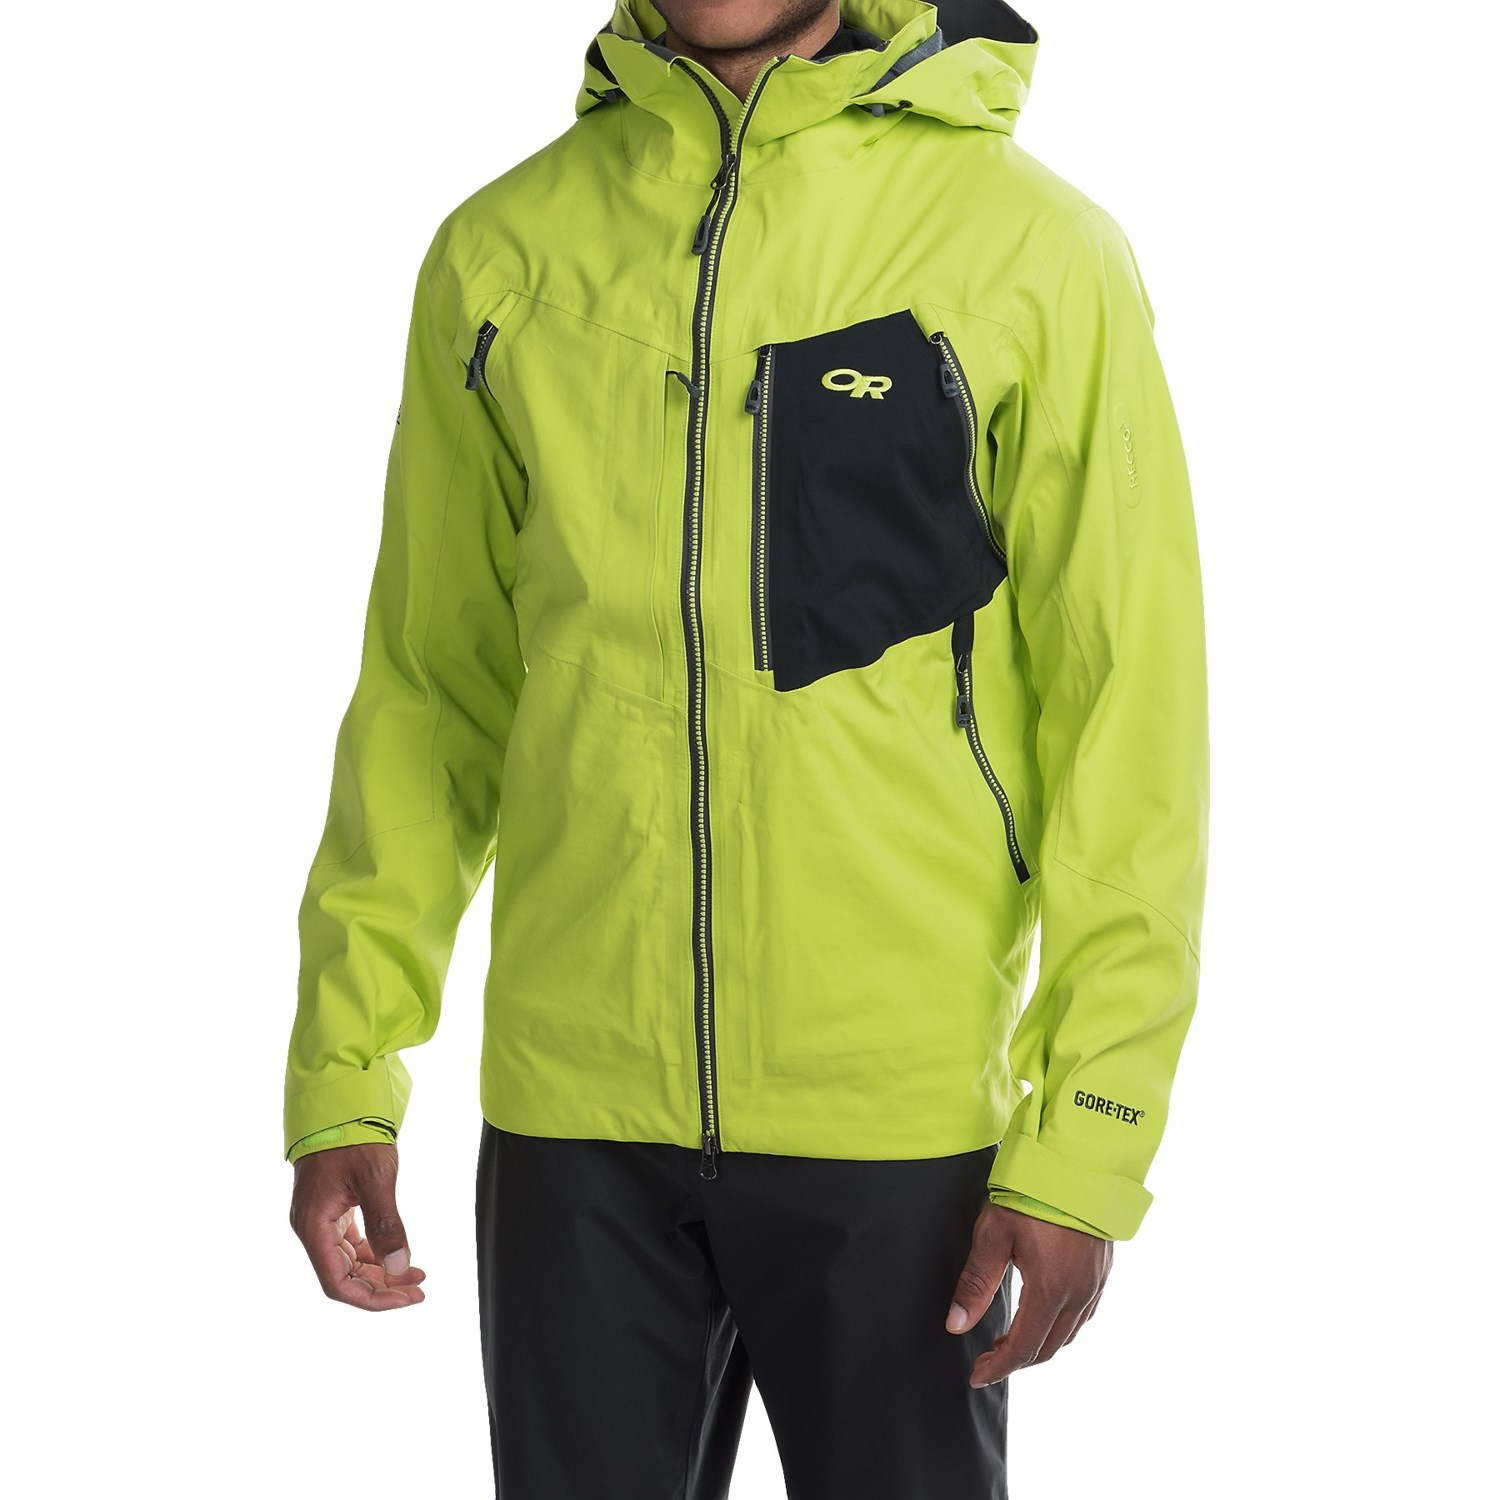 Outdoor Research White Room Jacket Review